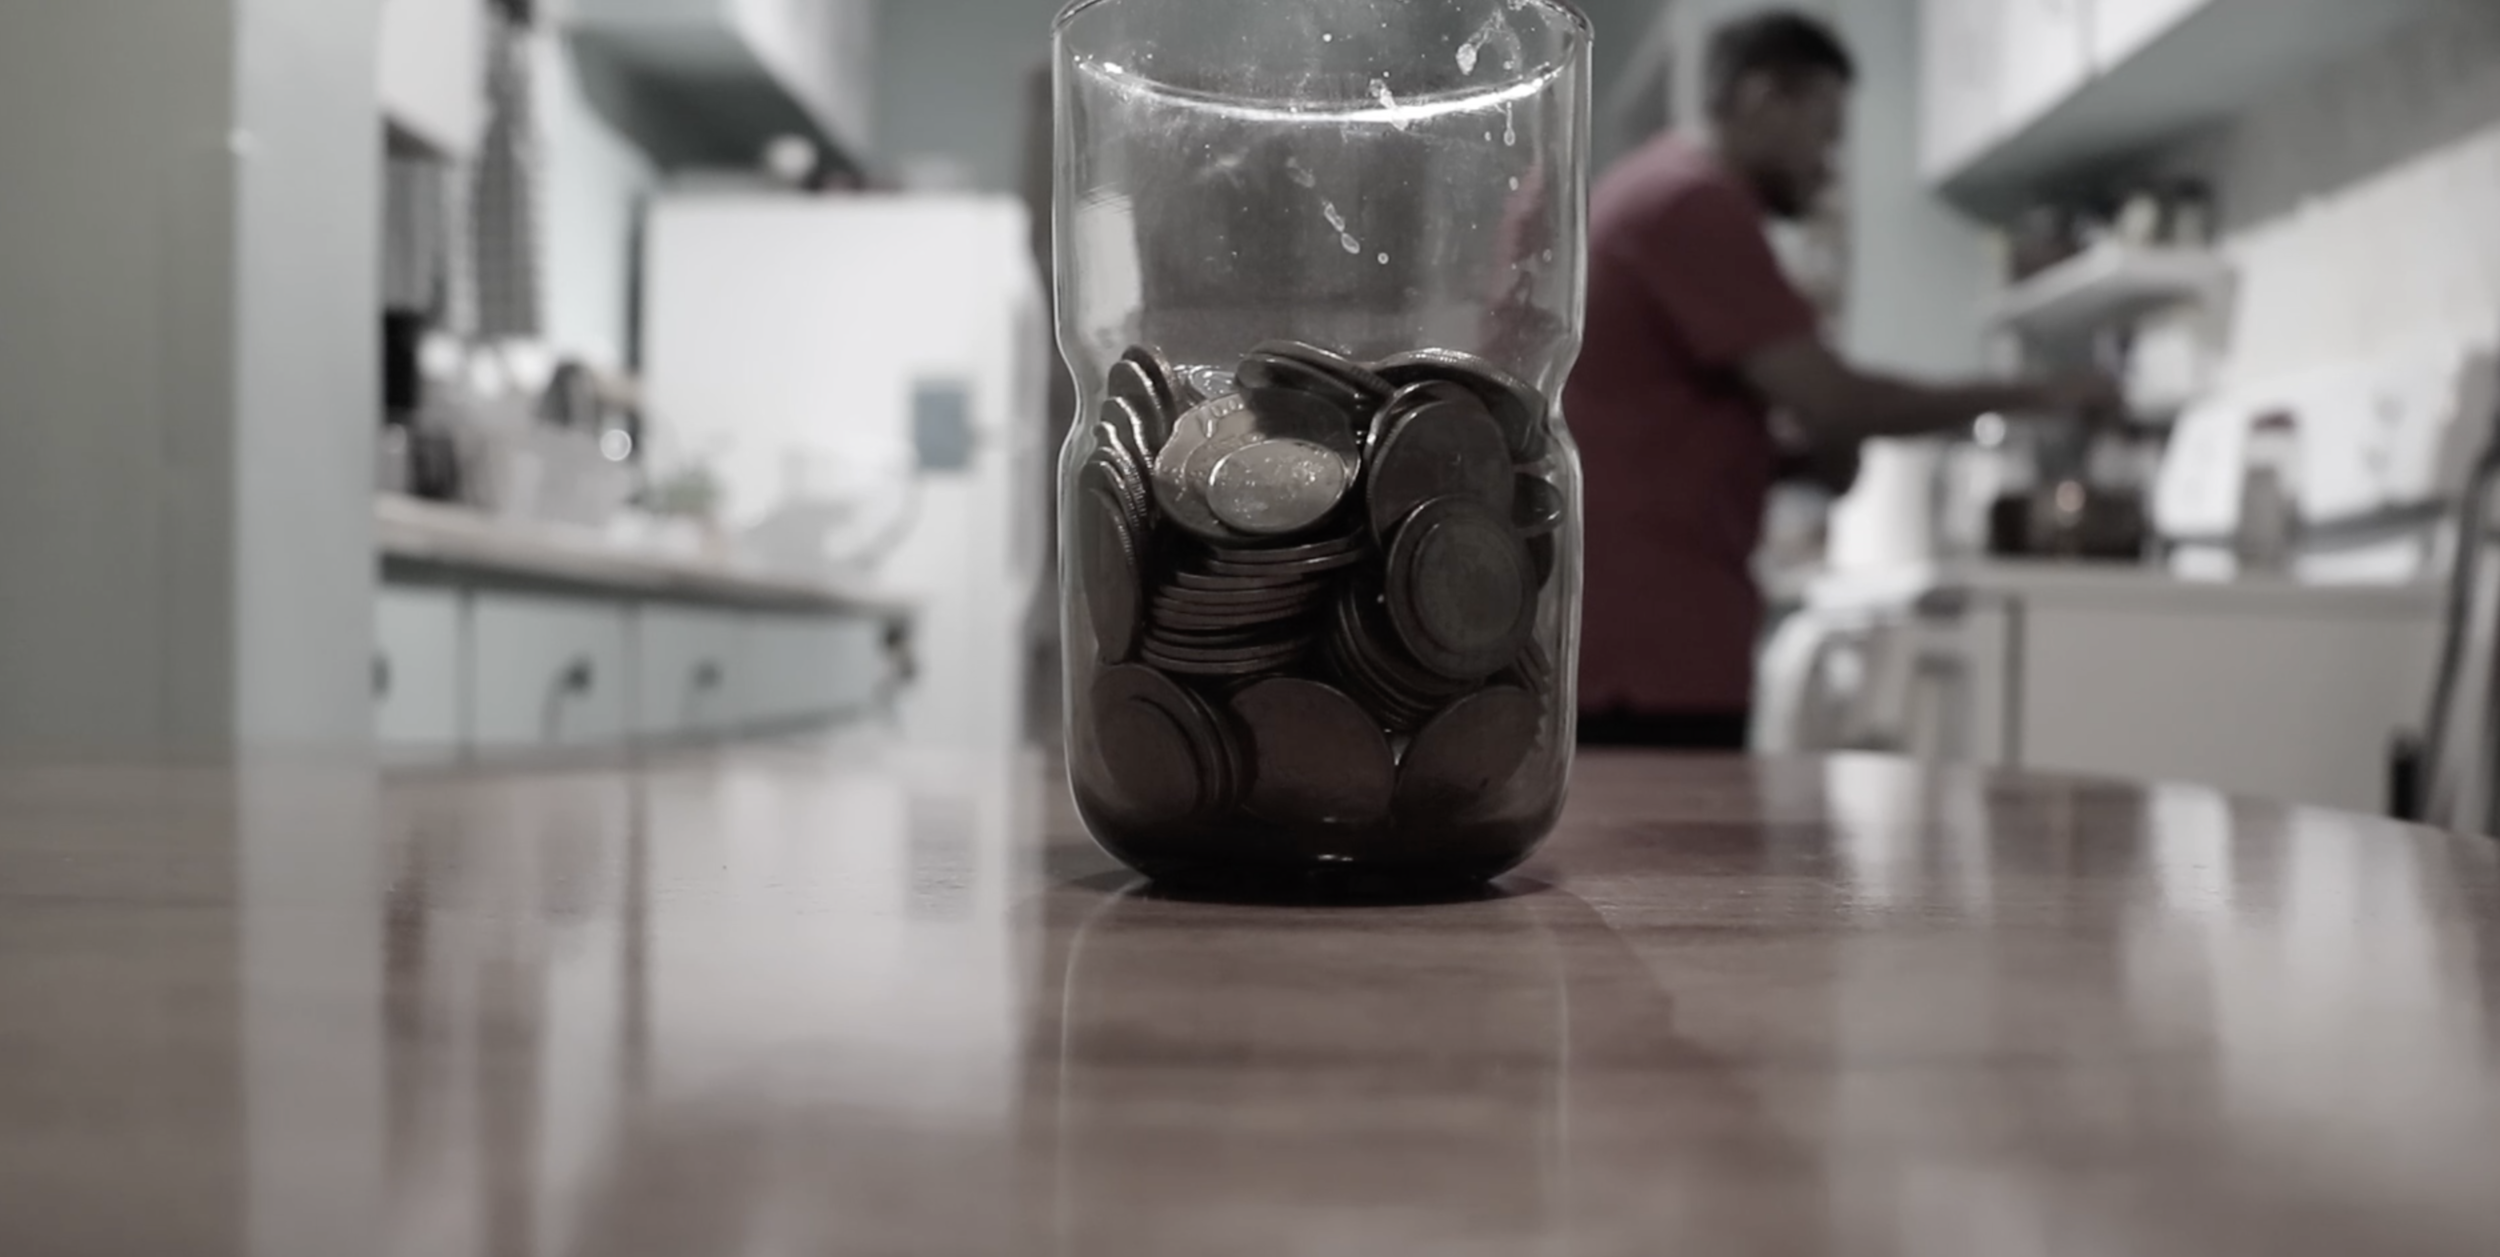 The Coin Jar (4:39)  Shadow Vasquez & Erin Florent  A couple moves into their new home and they experiences what life has to offer.